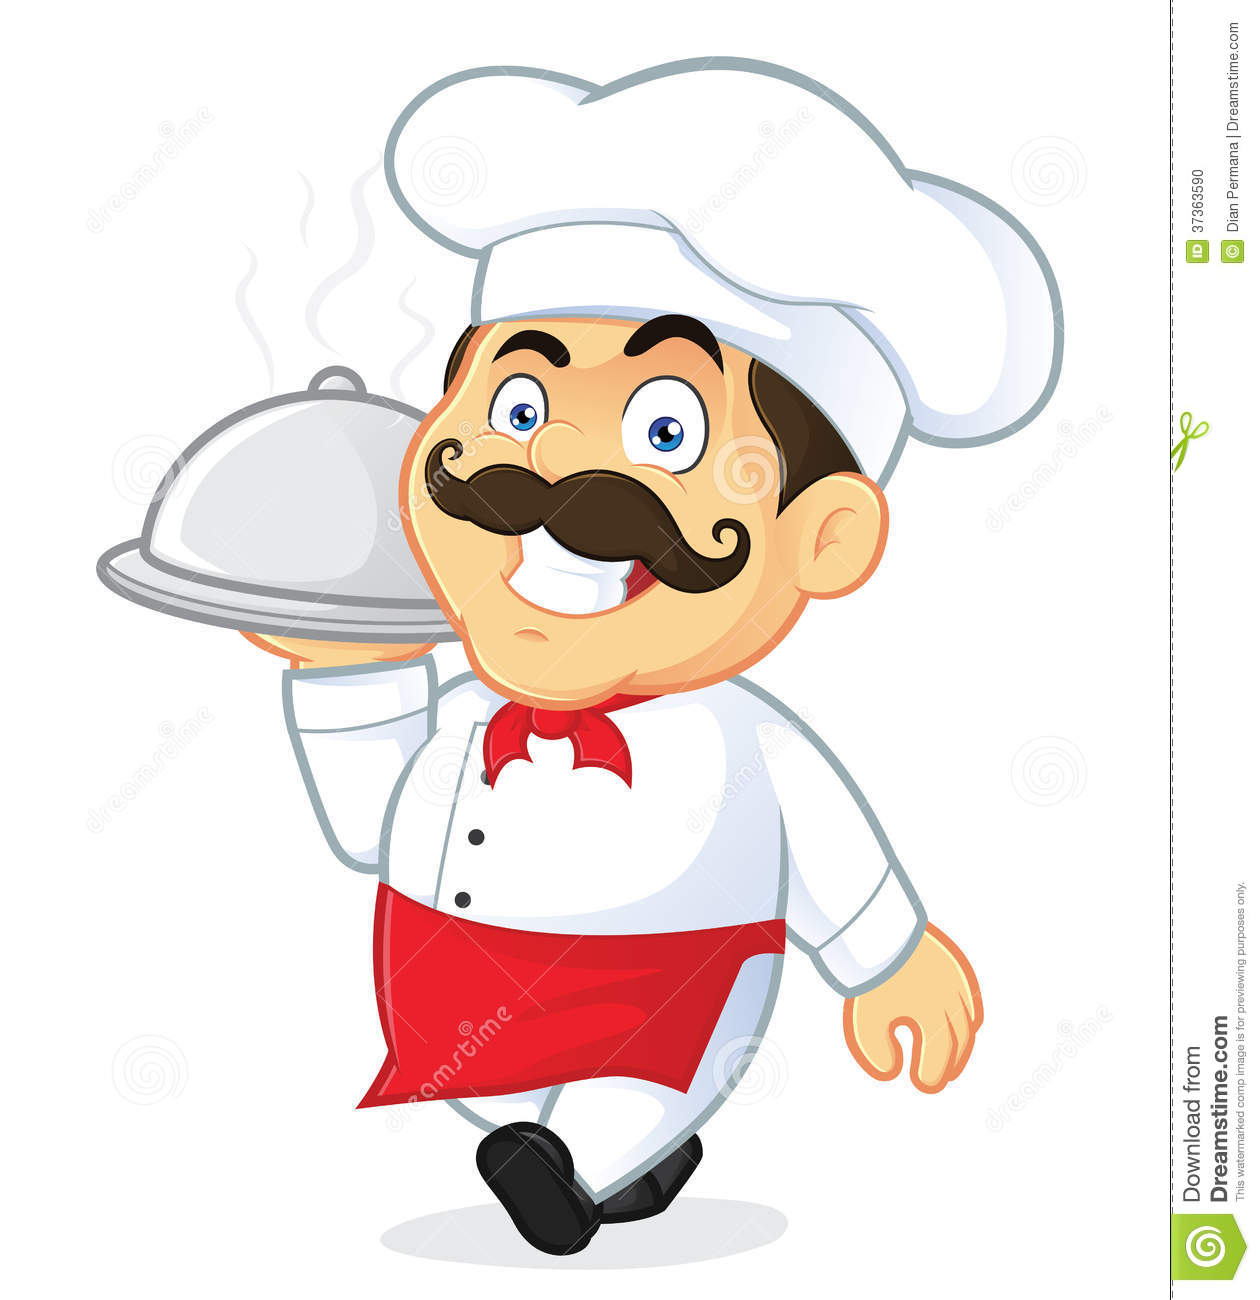 chef clipart cartoon #18